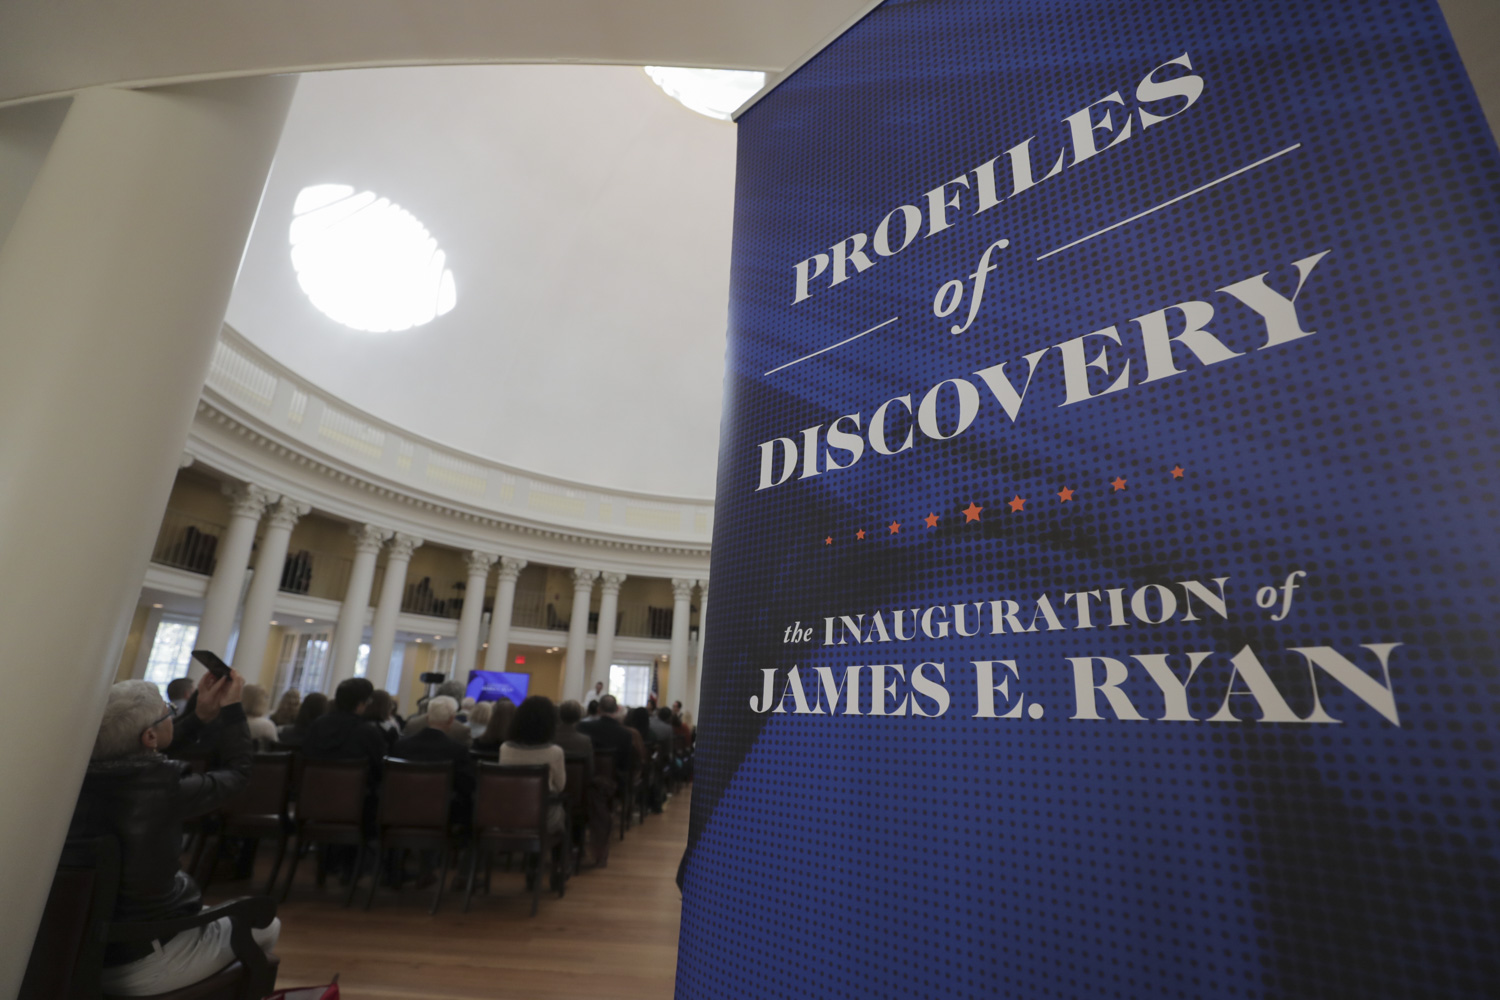 The Profiles in Discovery event was held Friday in the Rotunda Dome Room.